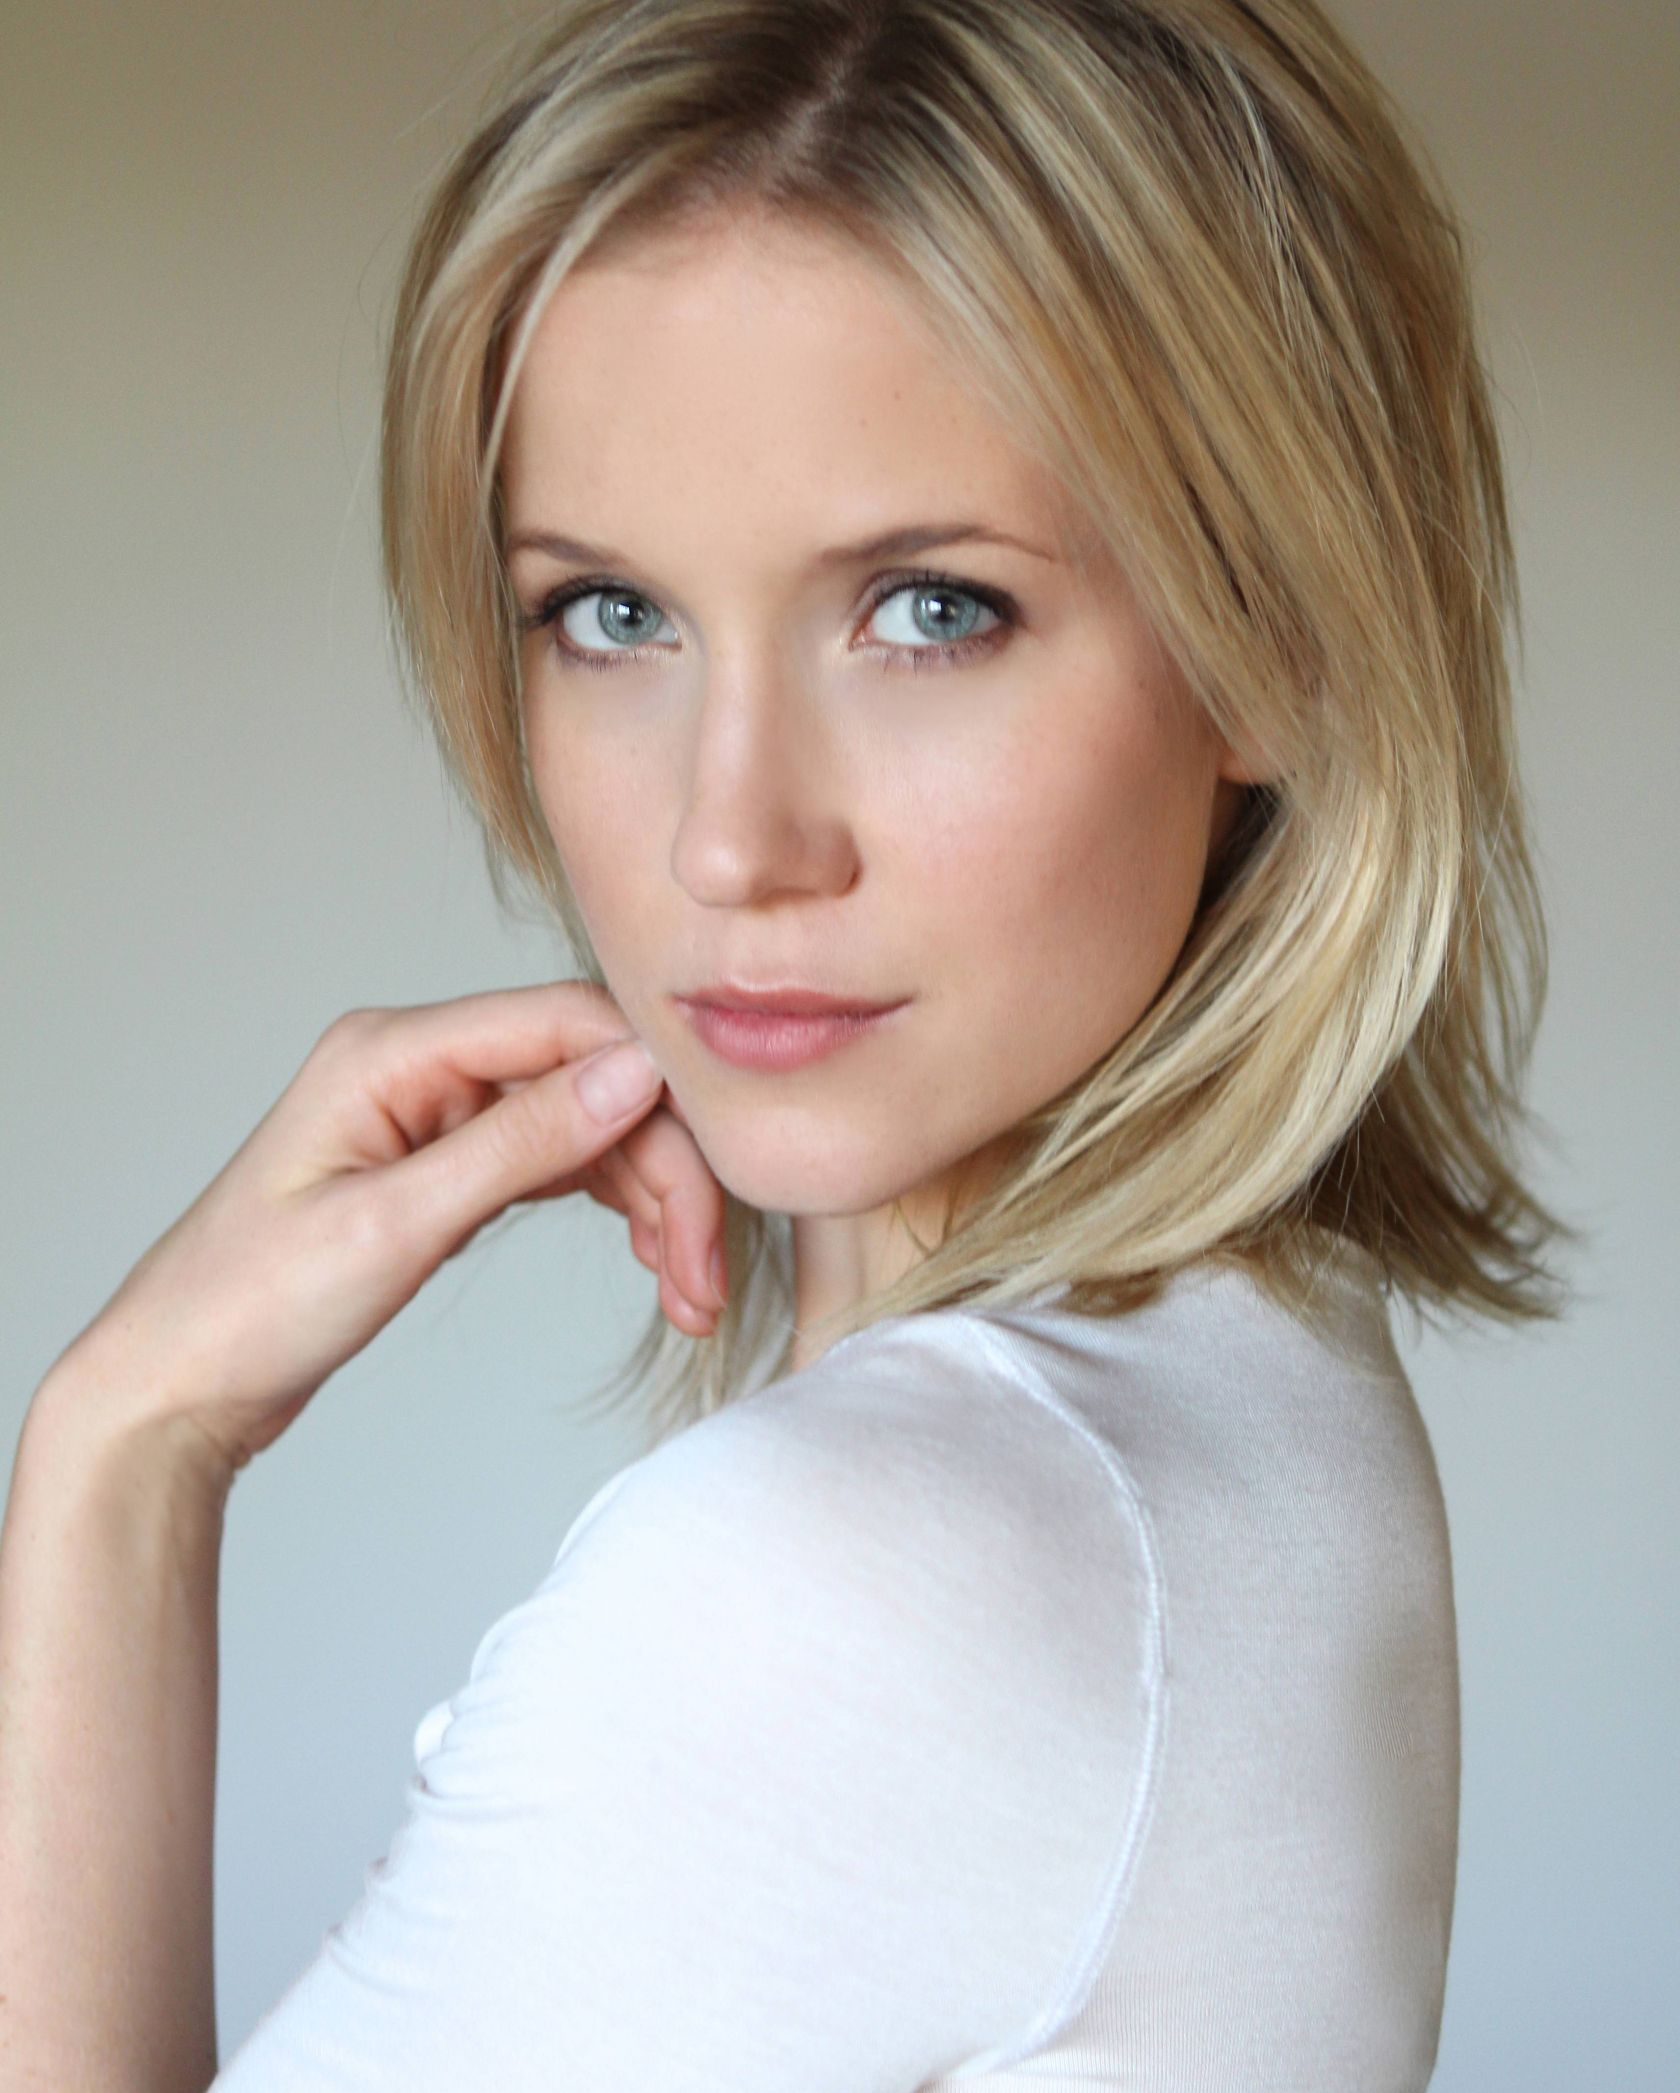 Jessy Schram nudes (42 foto and video), Ass, Leaked, Feet, braless 2015